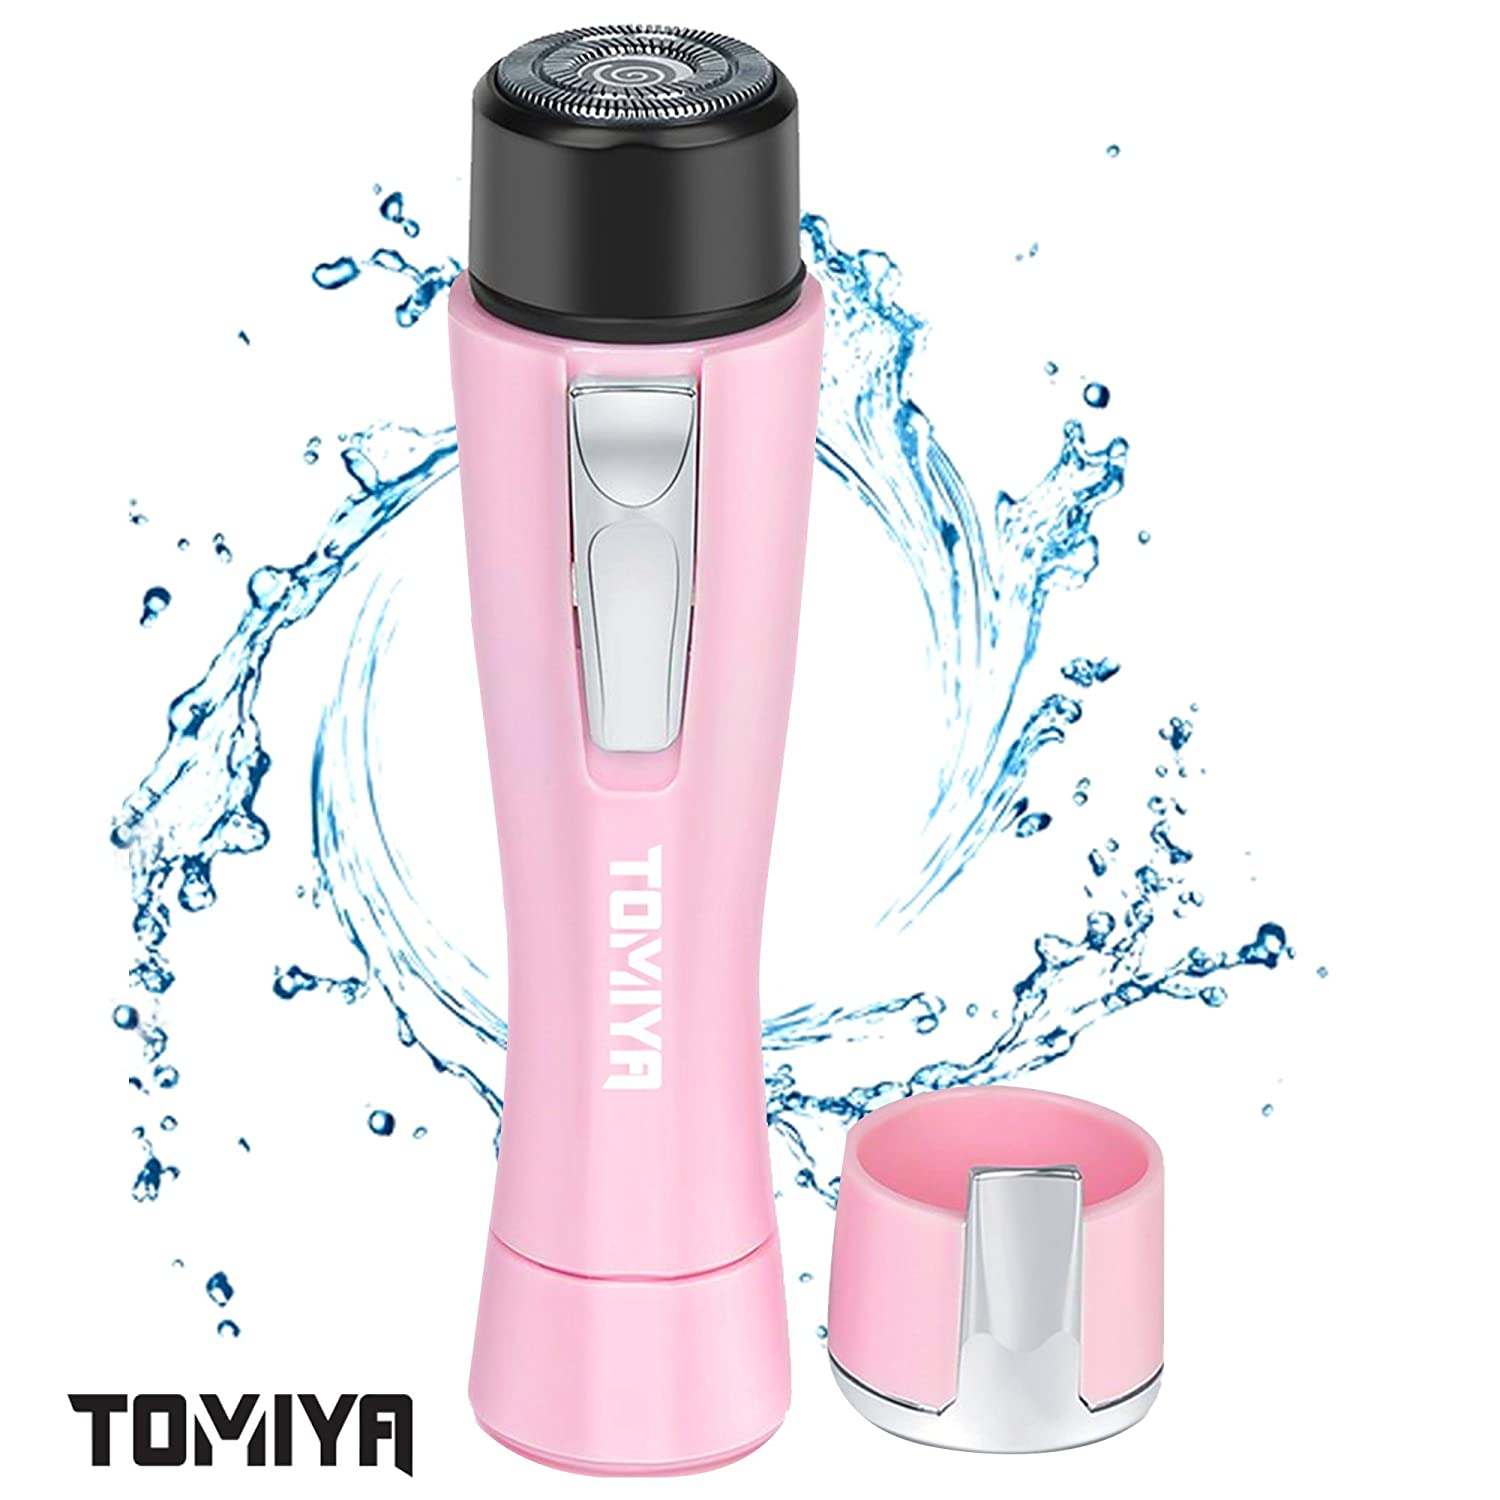 Bangbreak Tomiya Portable Miniature female facial hair remover. Electric Hair remover for women, Safe Painless Hair removal for women,Epilator for Face Lip Body Chin and Cheek. SB A-1